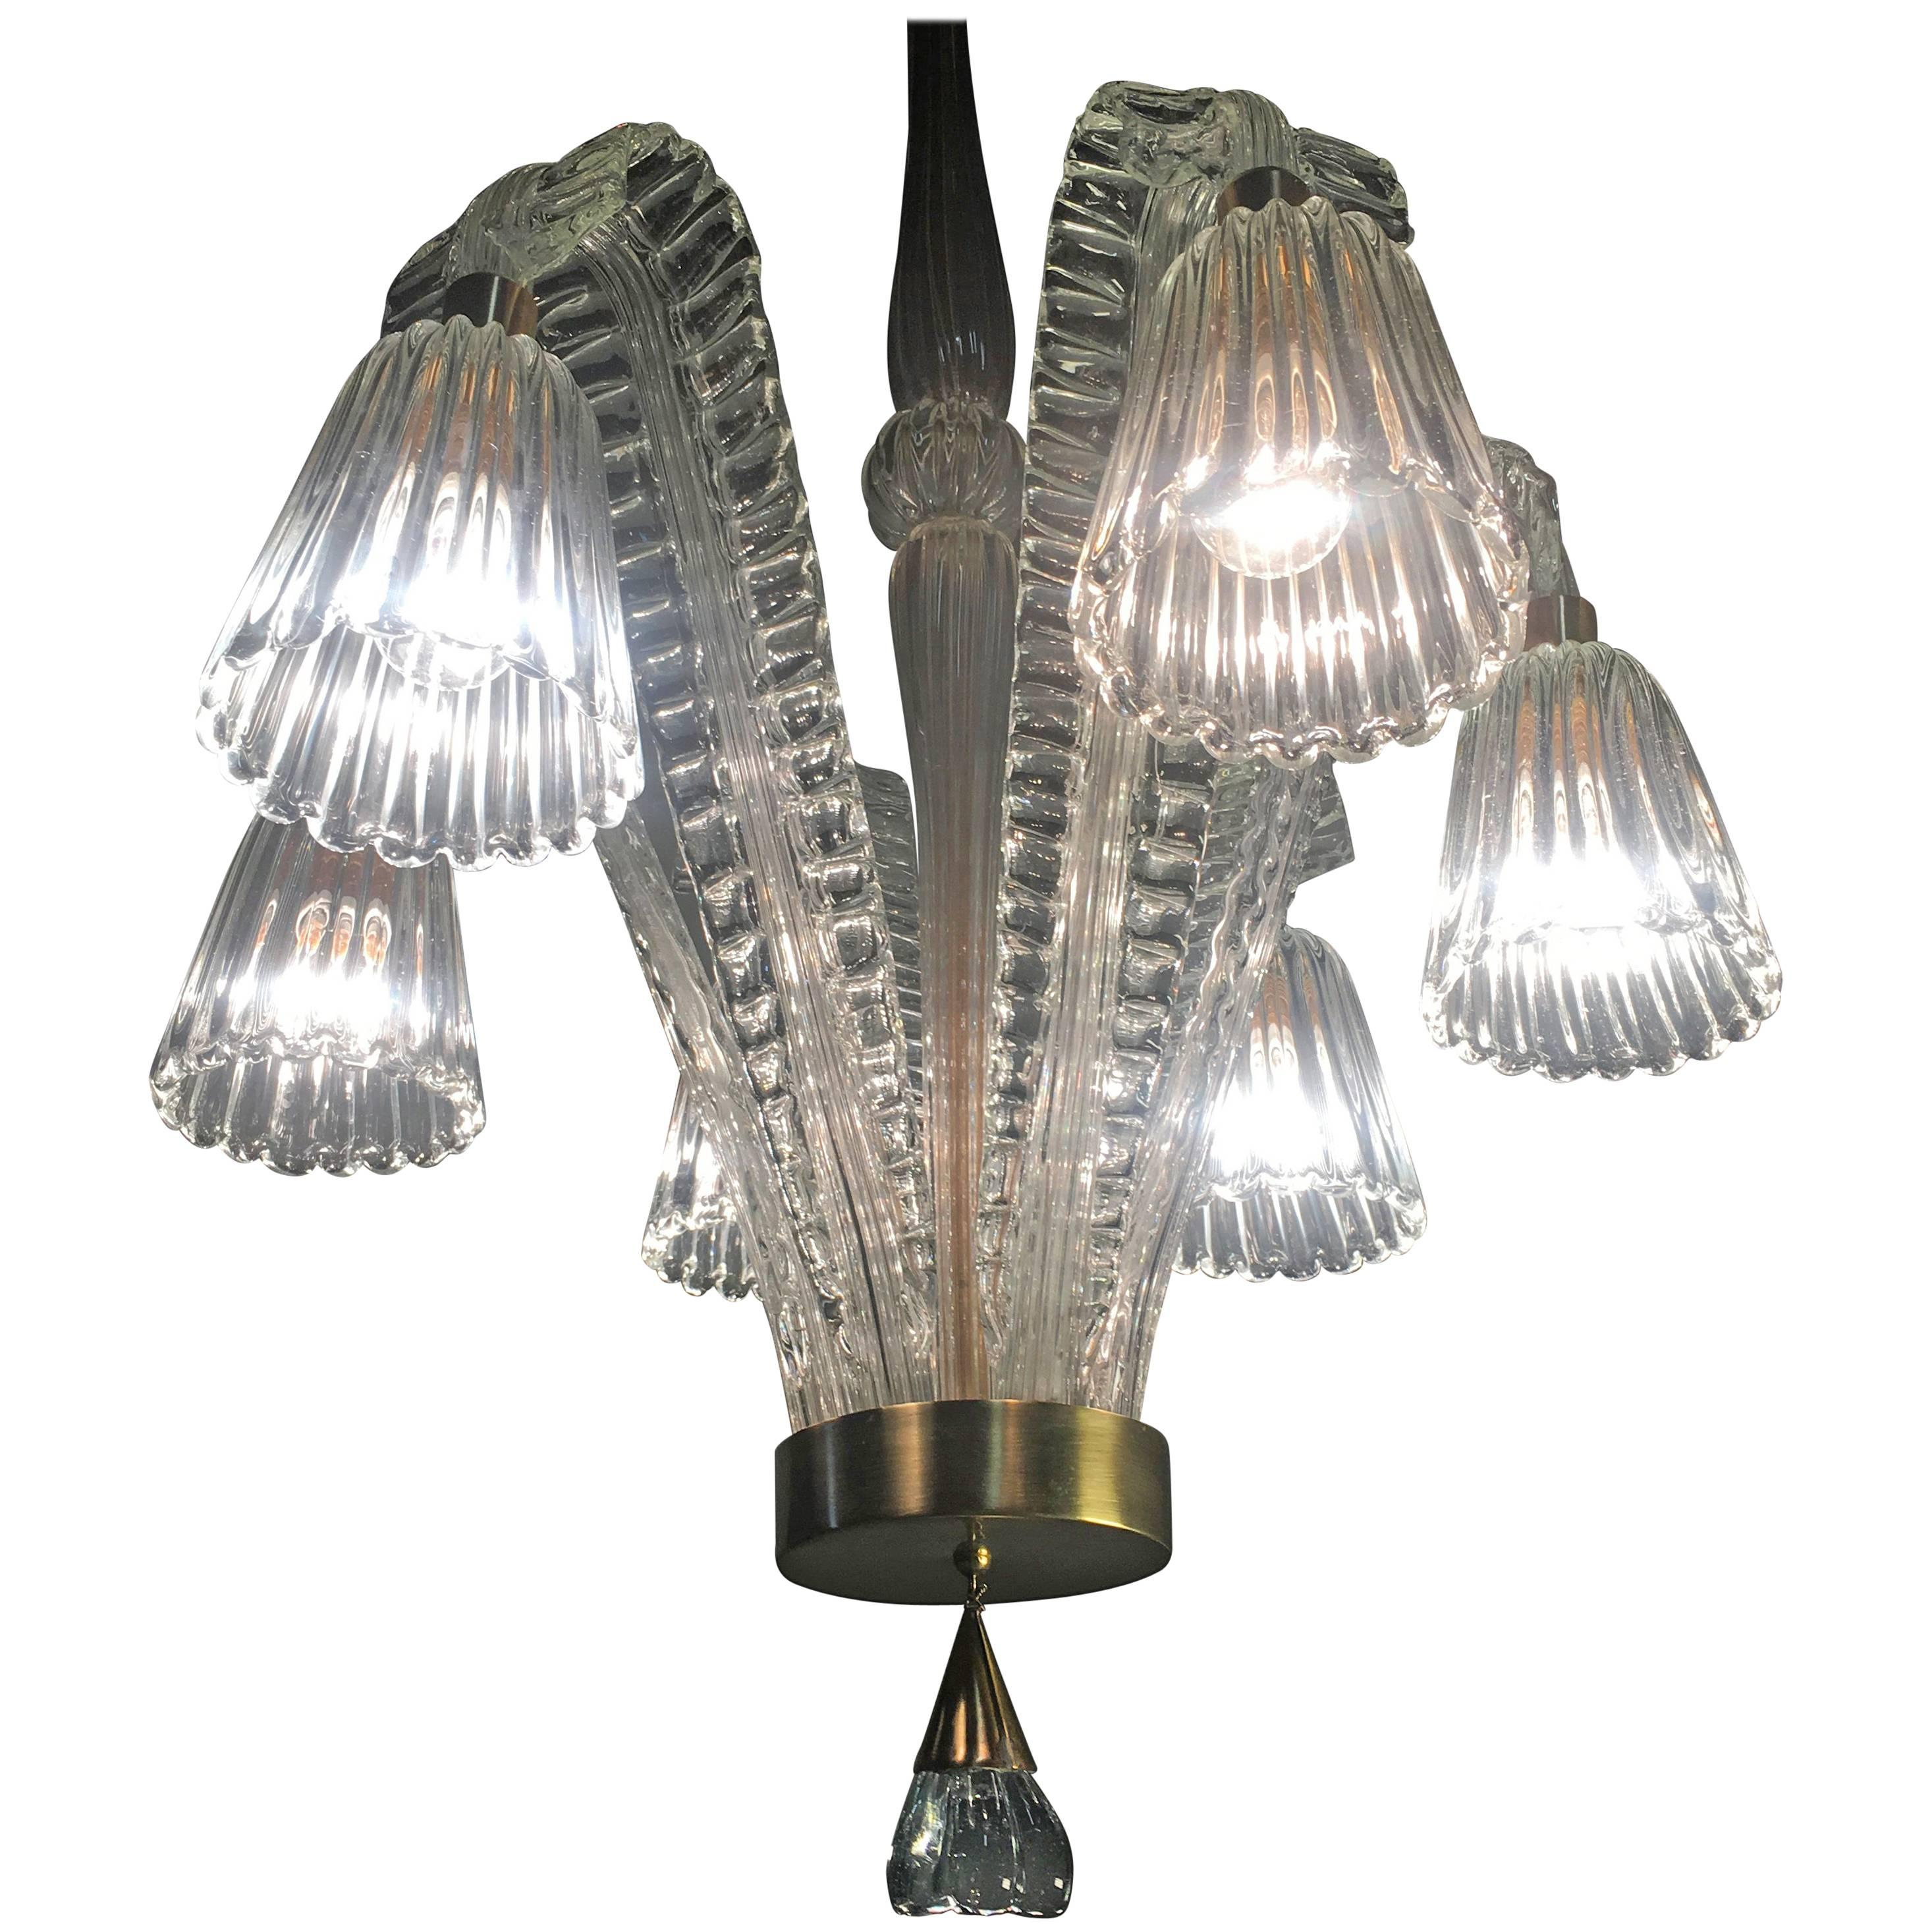 Charming Art Deco Chandelier by Ercole Barovier, Murano, 1940s